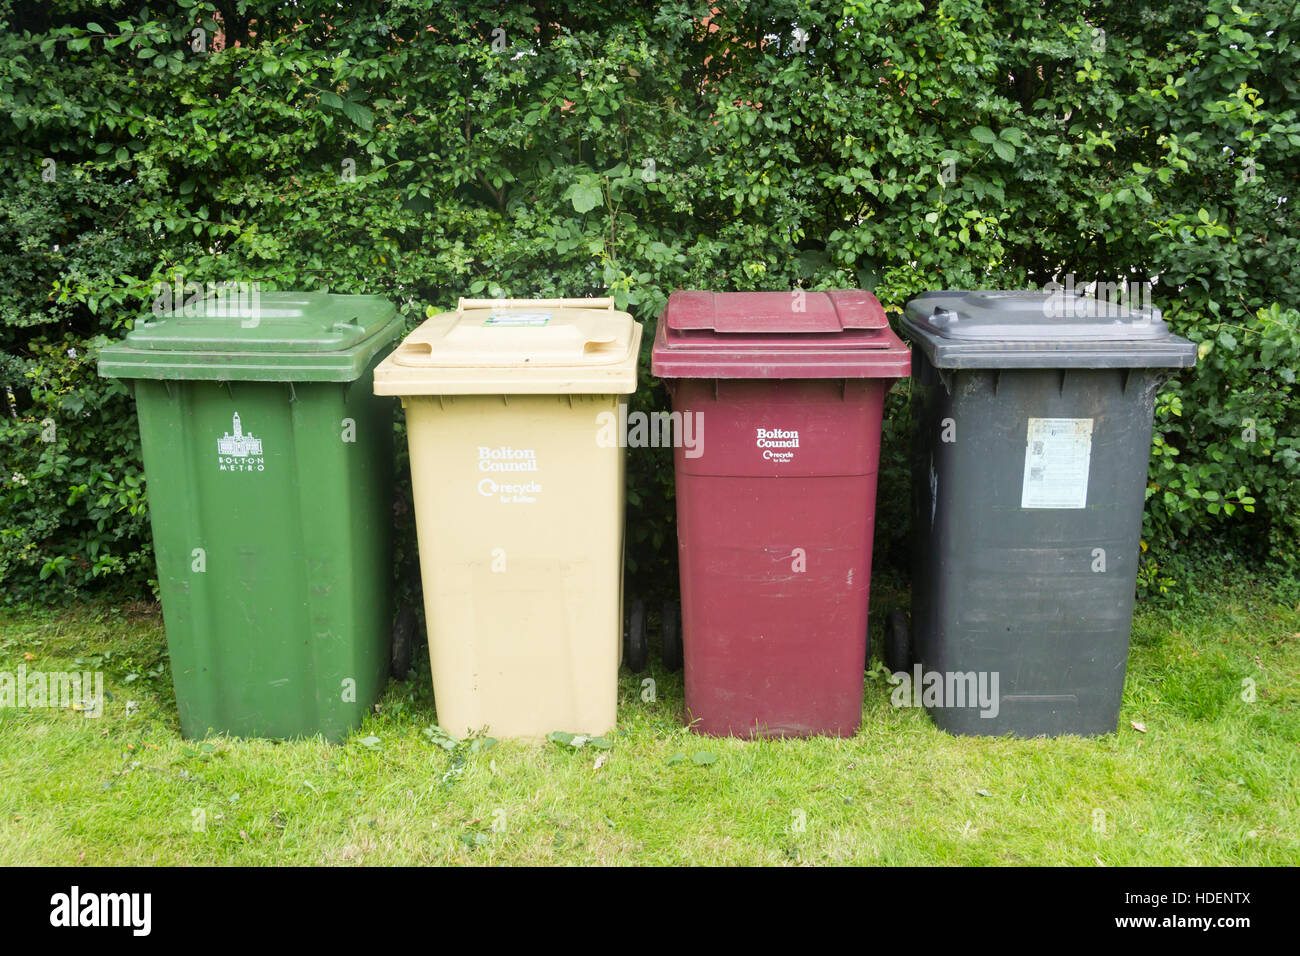 Bolton Council domestic waste and recycling bins for garden waste, food scraps, paper, card, cans,  bottles and Stock Photo